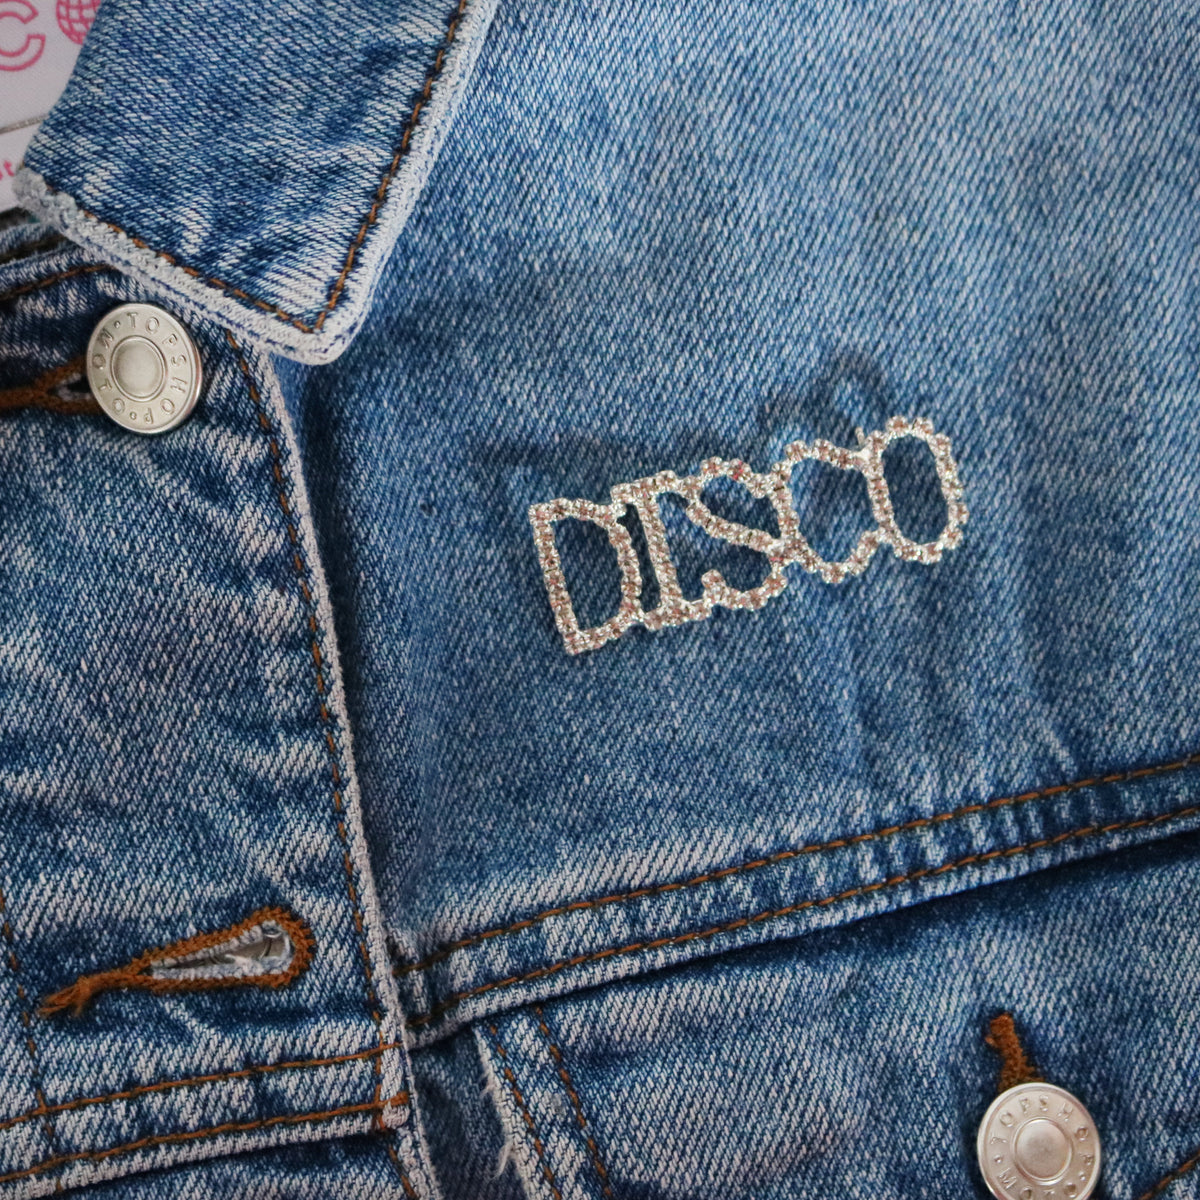 DISCO Rhinestone Pin - Abbey Eilermann